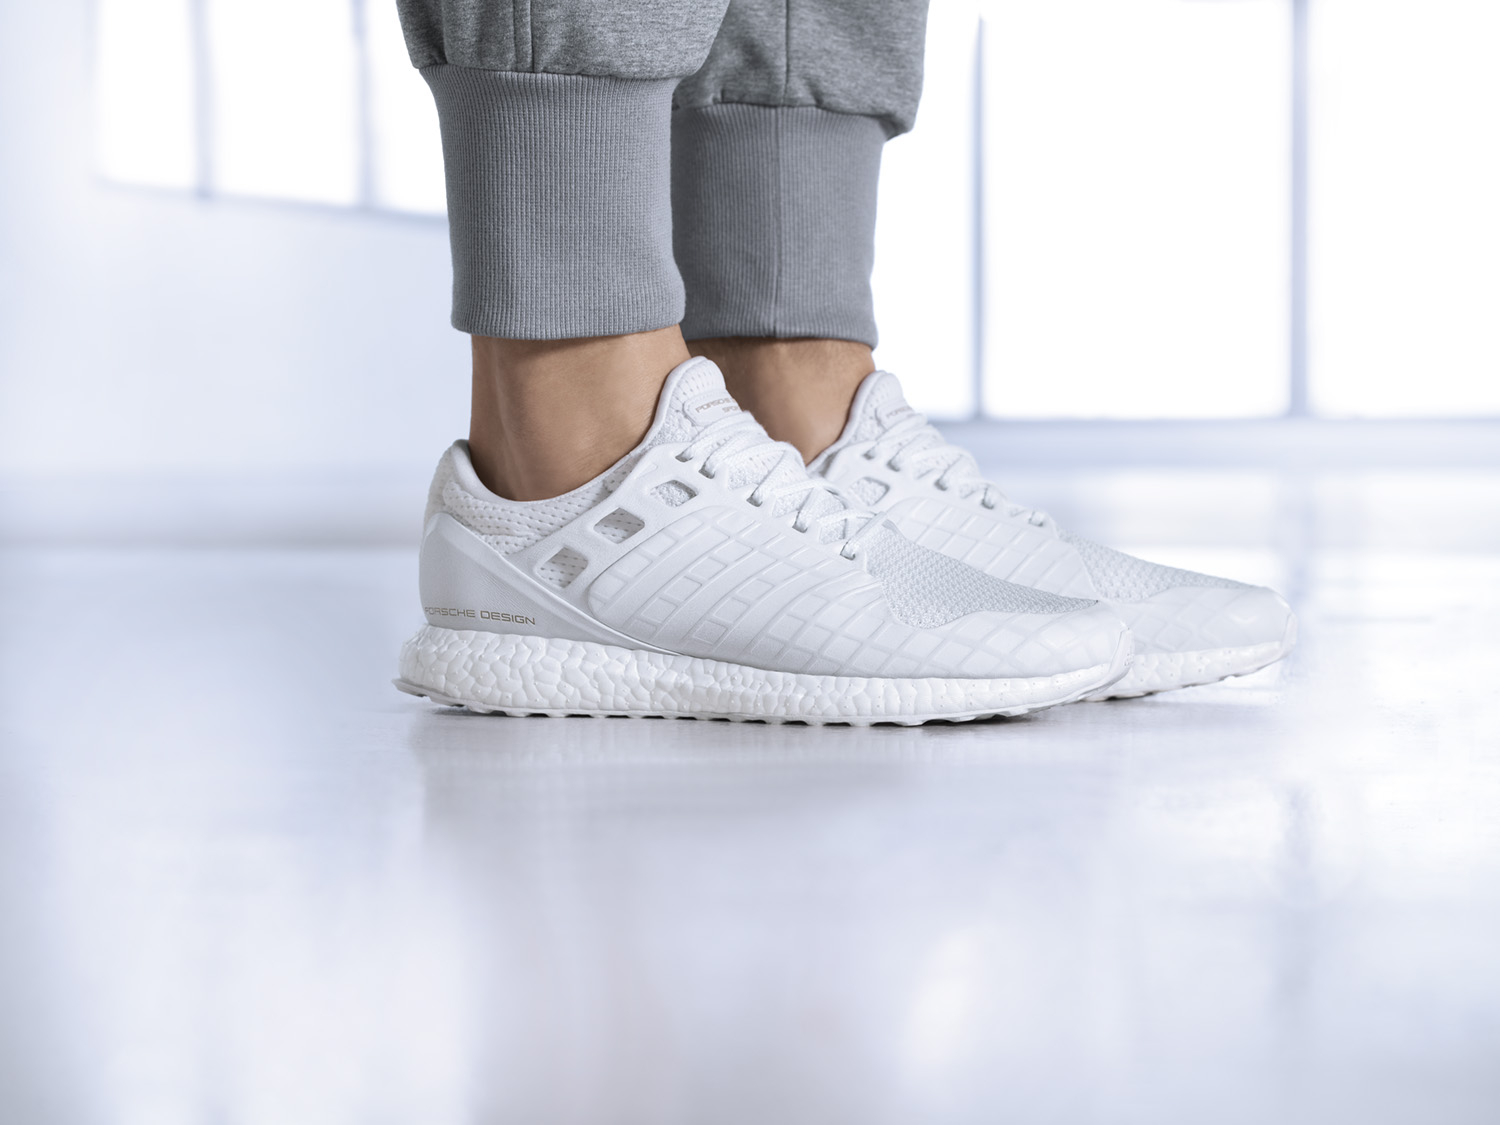 Porsche Design Sport by adidas releases the all white UltraBOOST-2